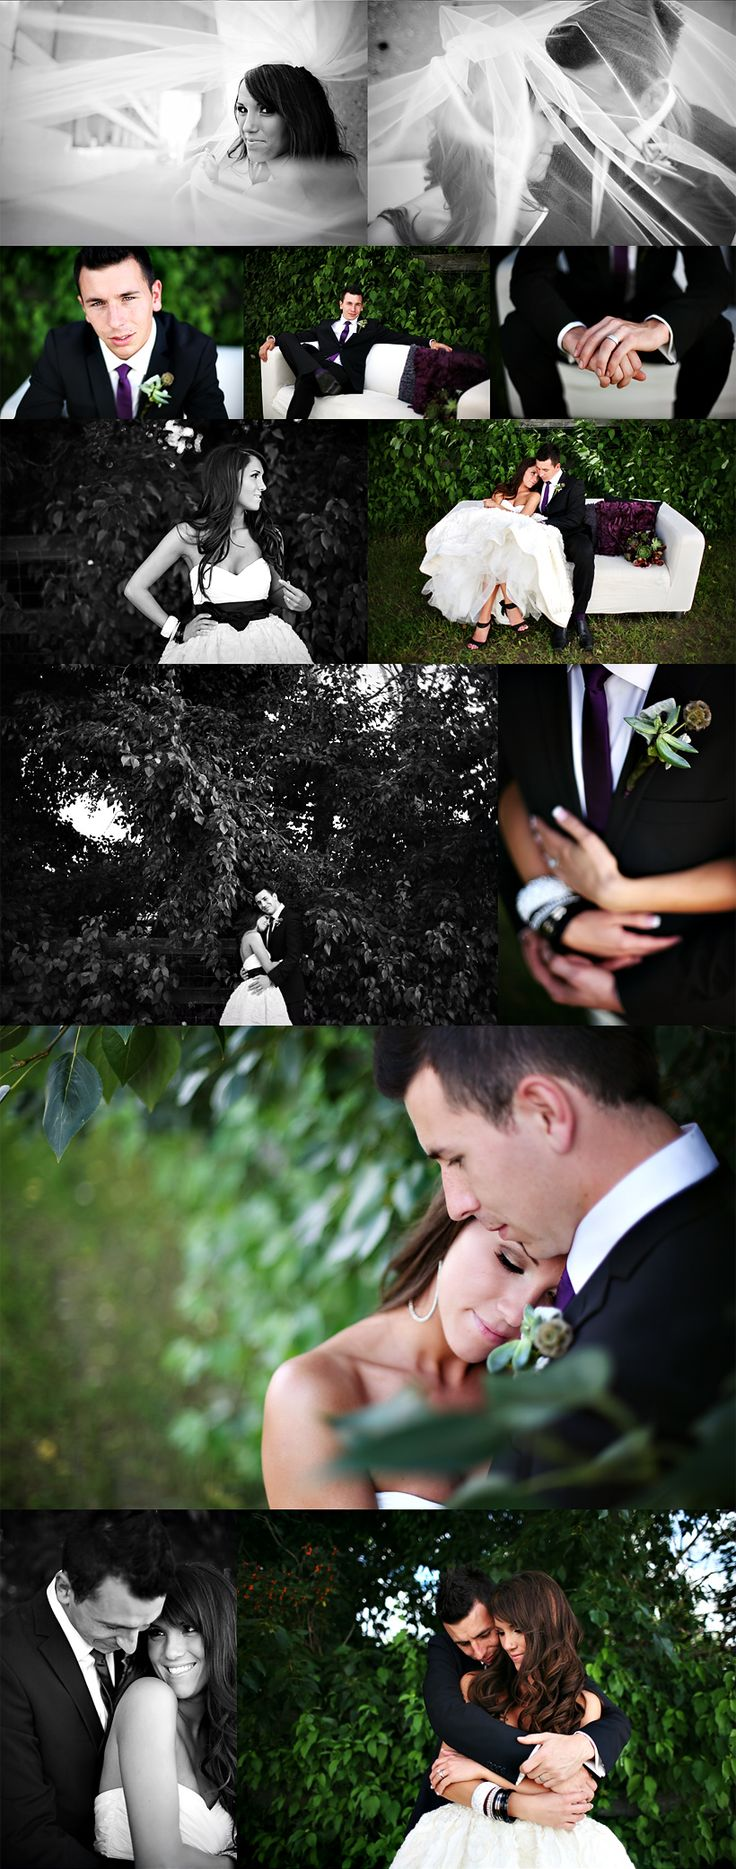 couples, wedding day, bride and groom